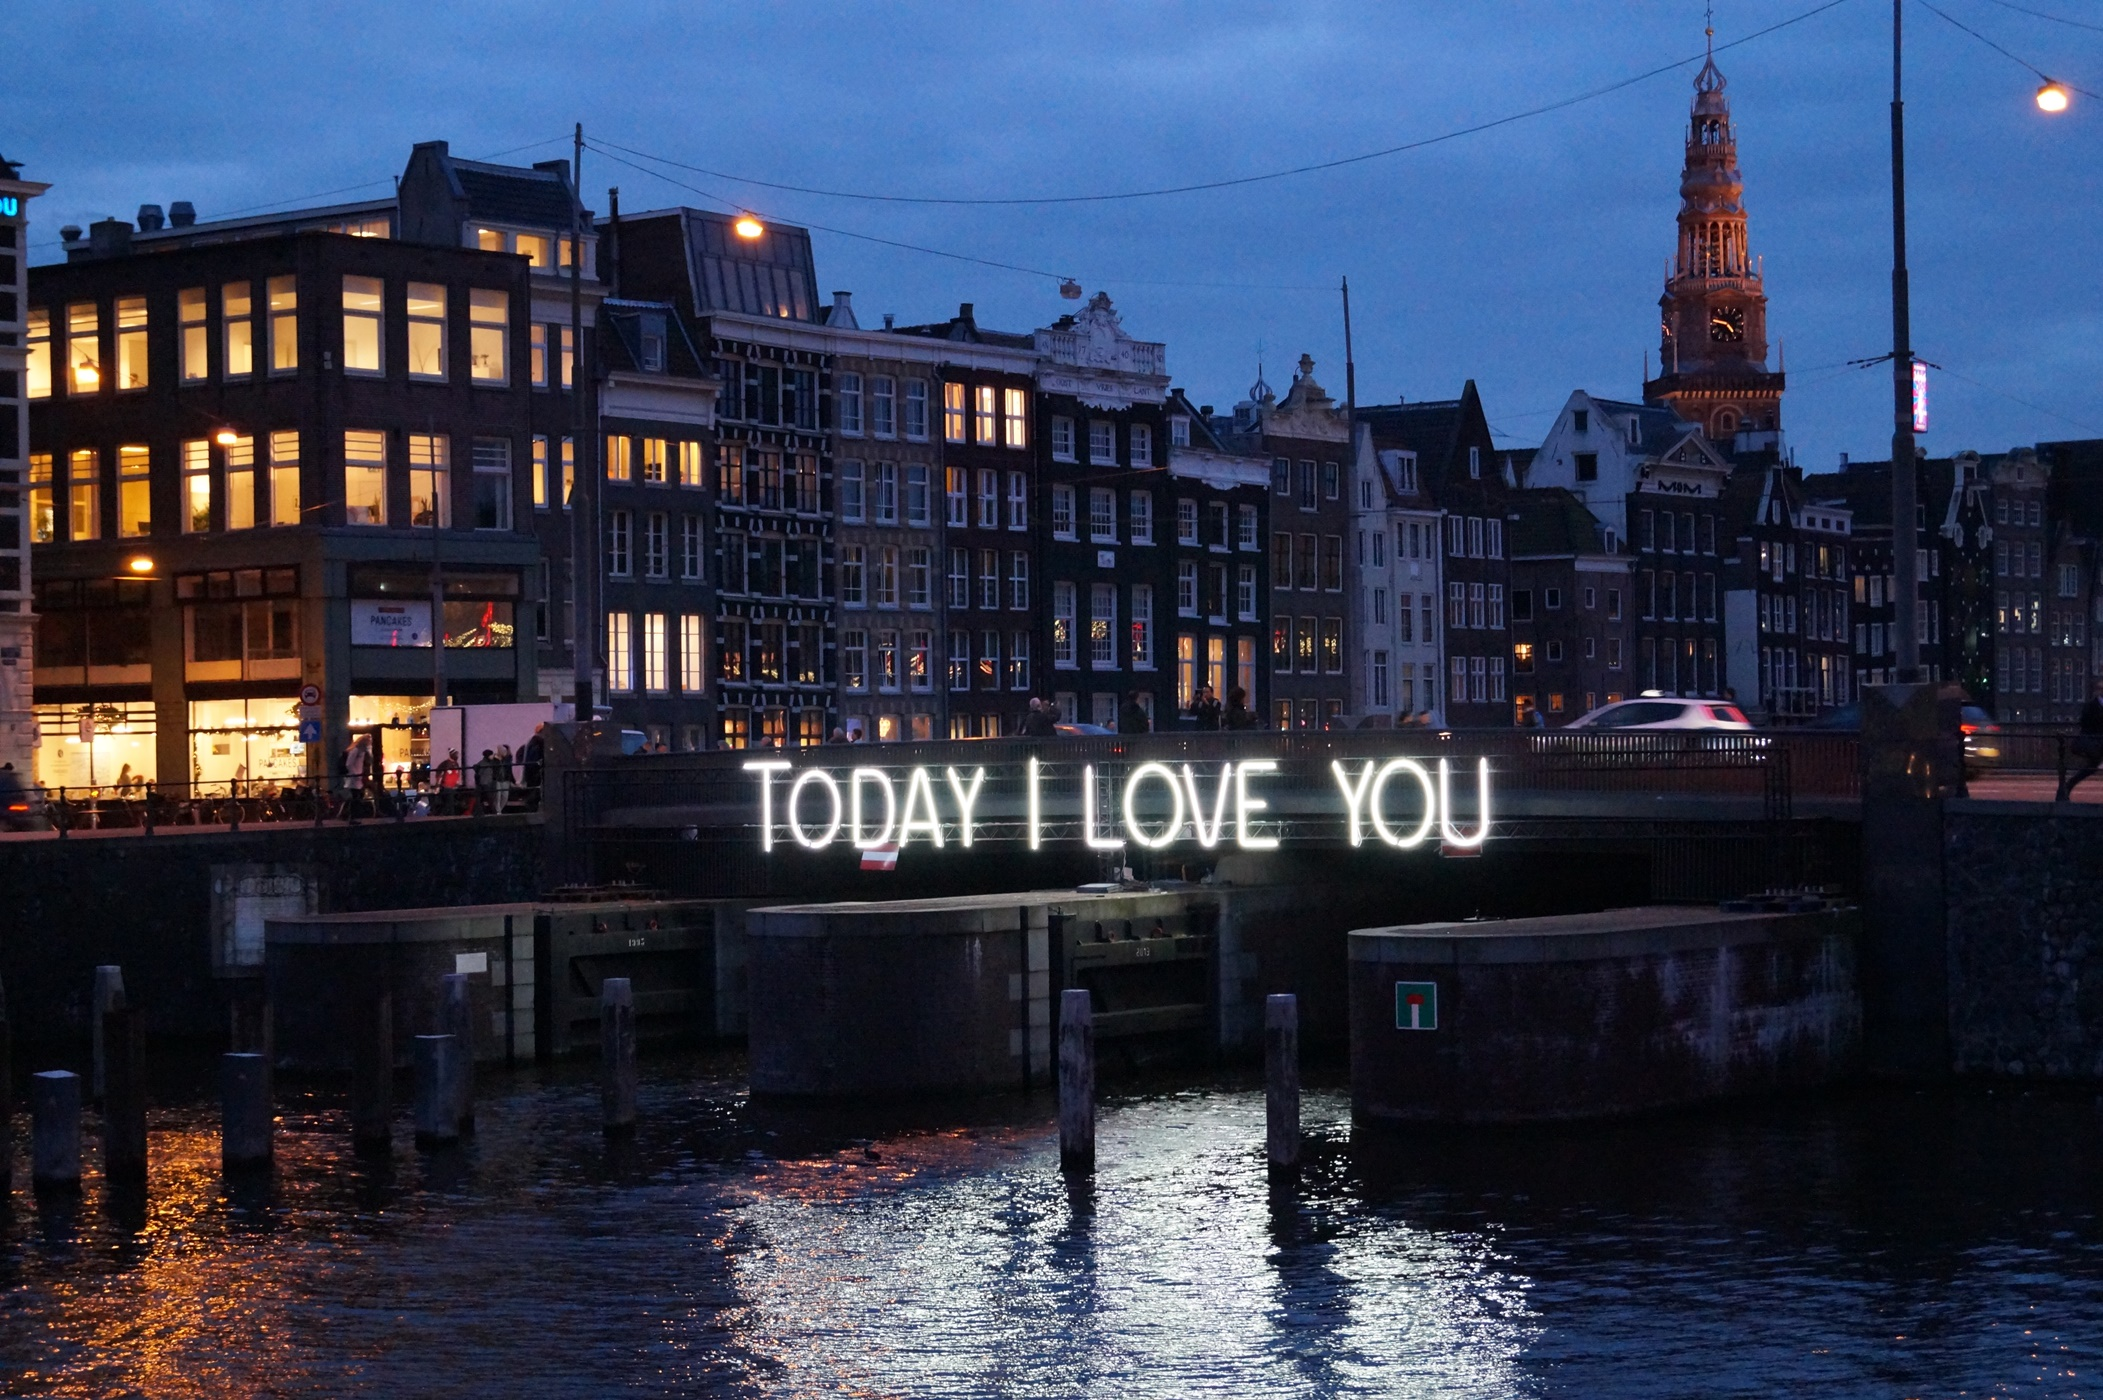 'Today I Love You' installation by Massimo Uberti